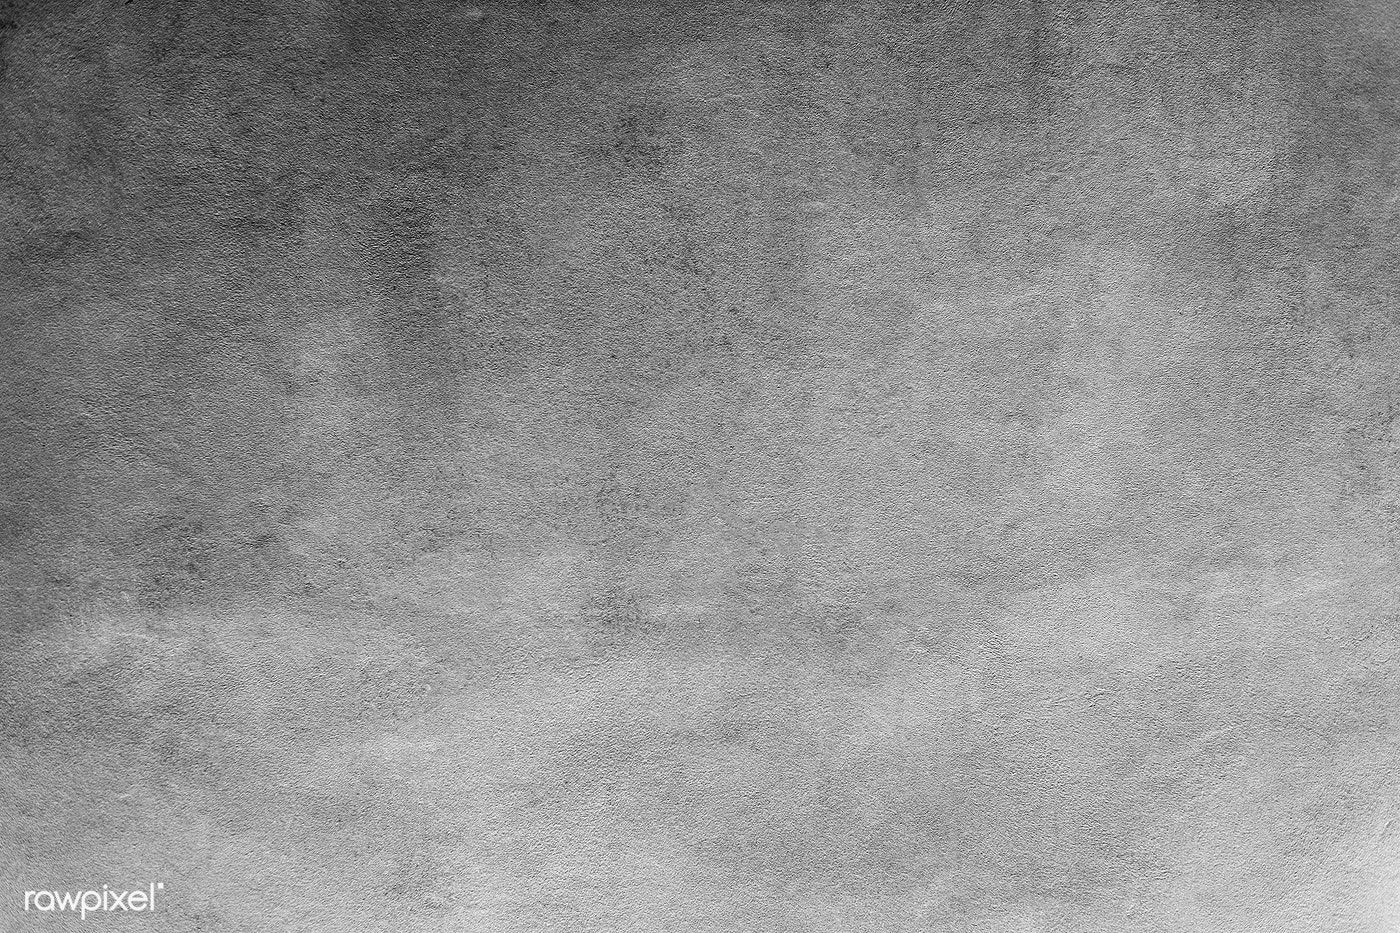 Gray Smooth Textured Wall Background Free Image By Rawpixel Com Textured Wall Concrete Texture Wall Background